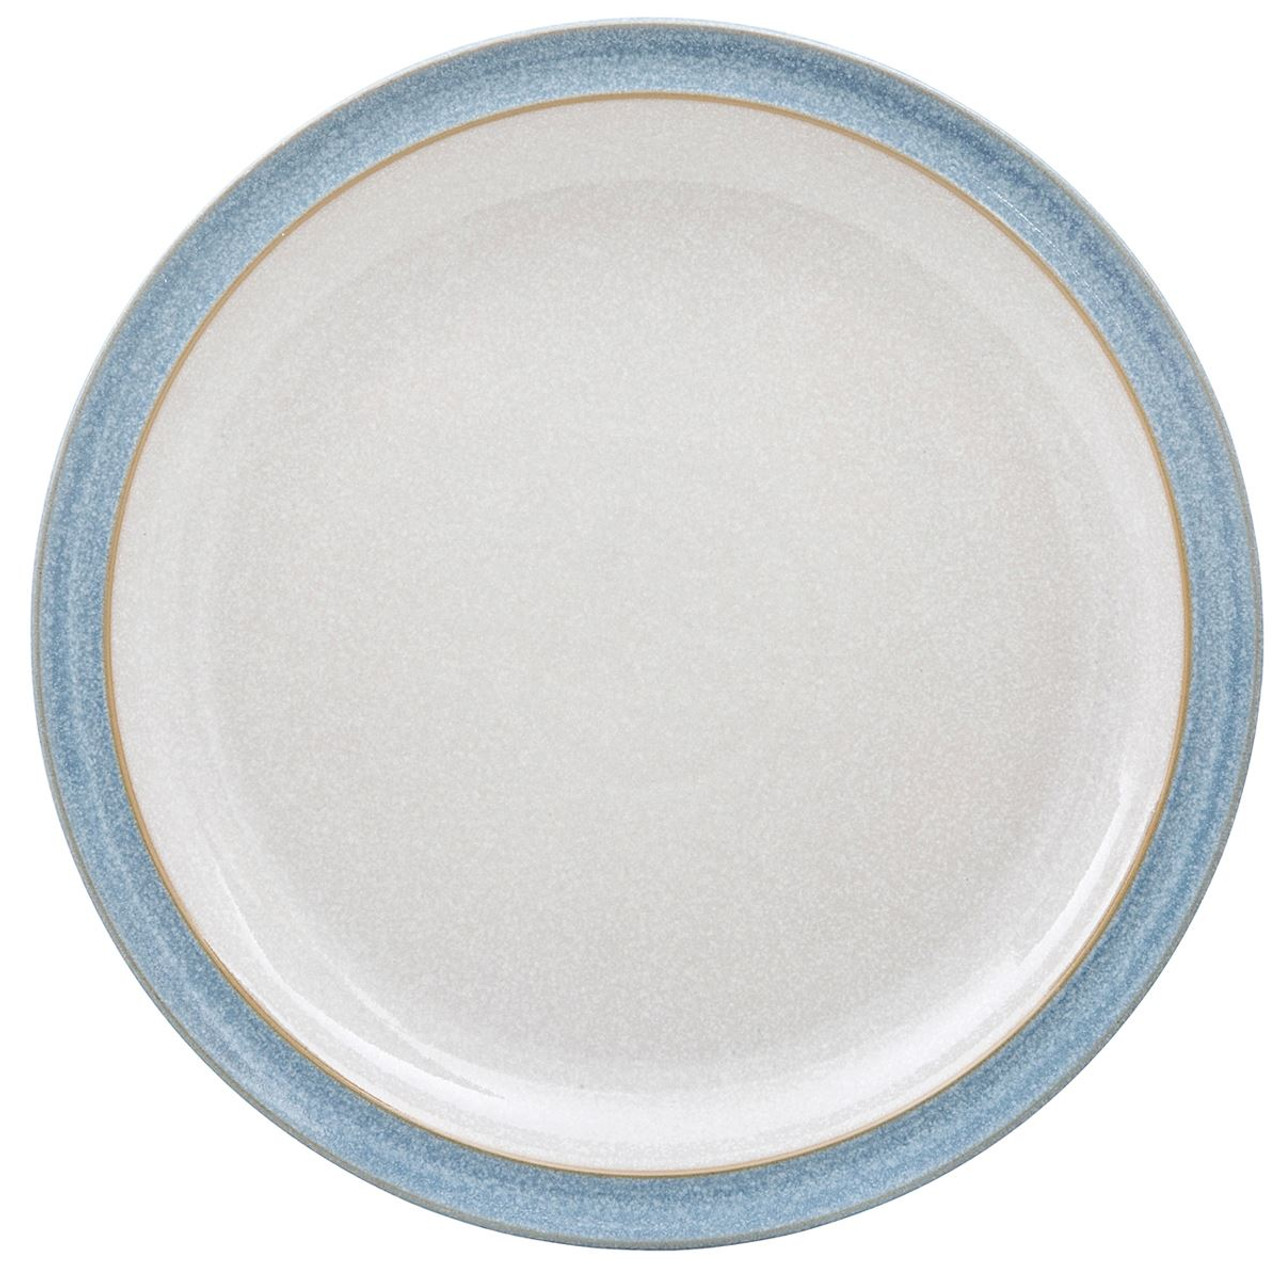 Denby Elements Light Blue Dinner Plate